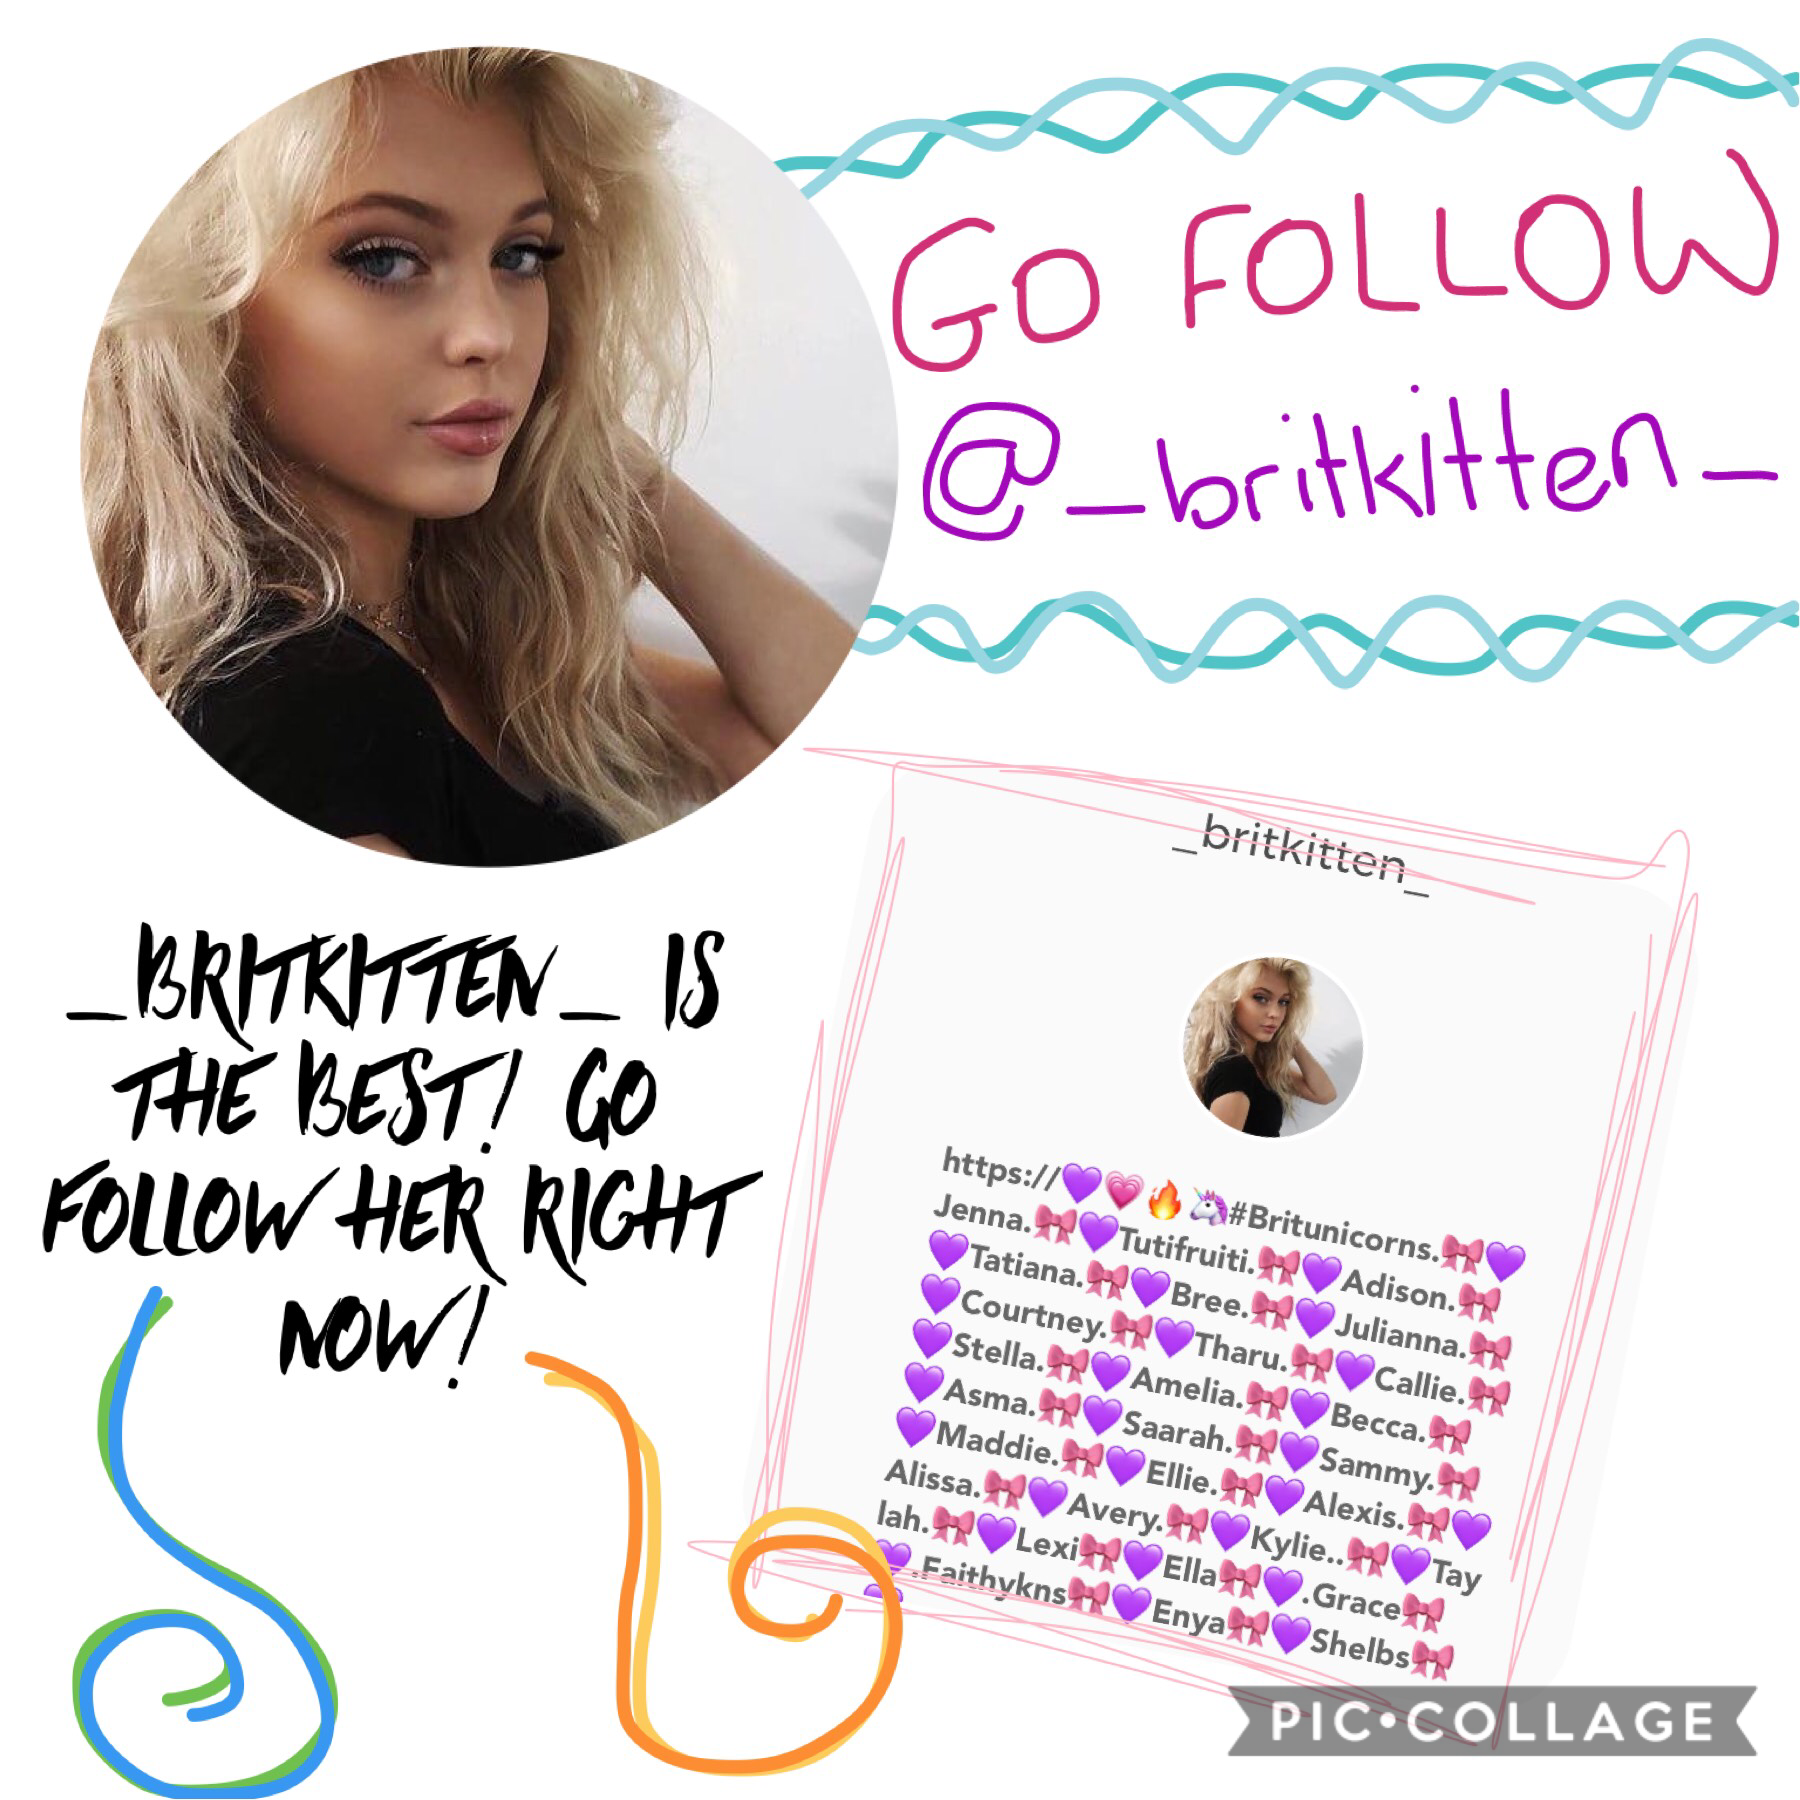 Go follow her right now!